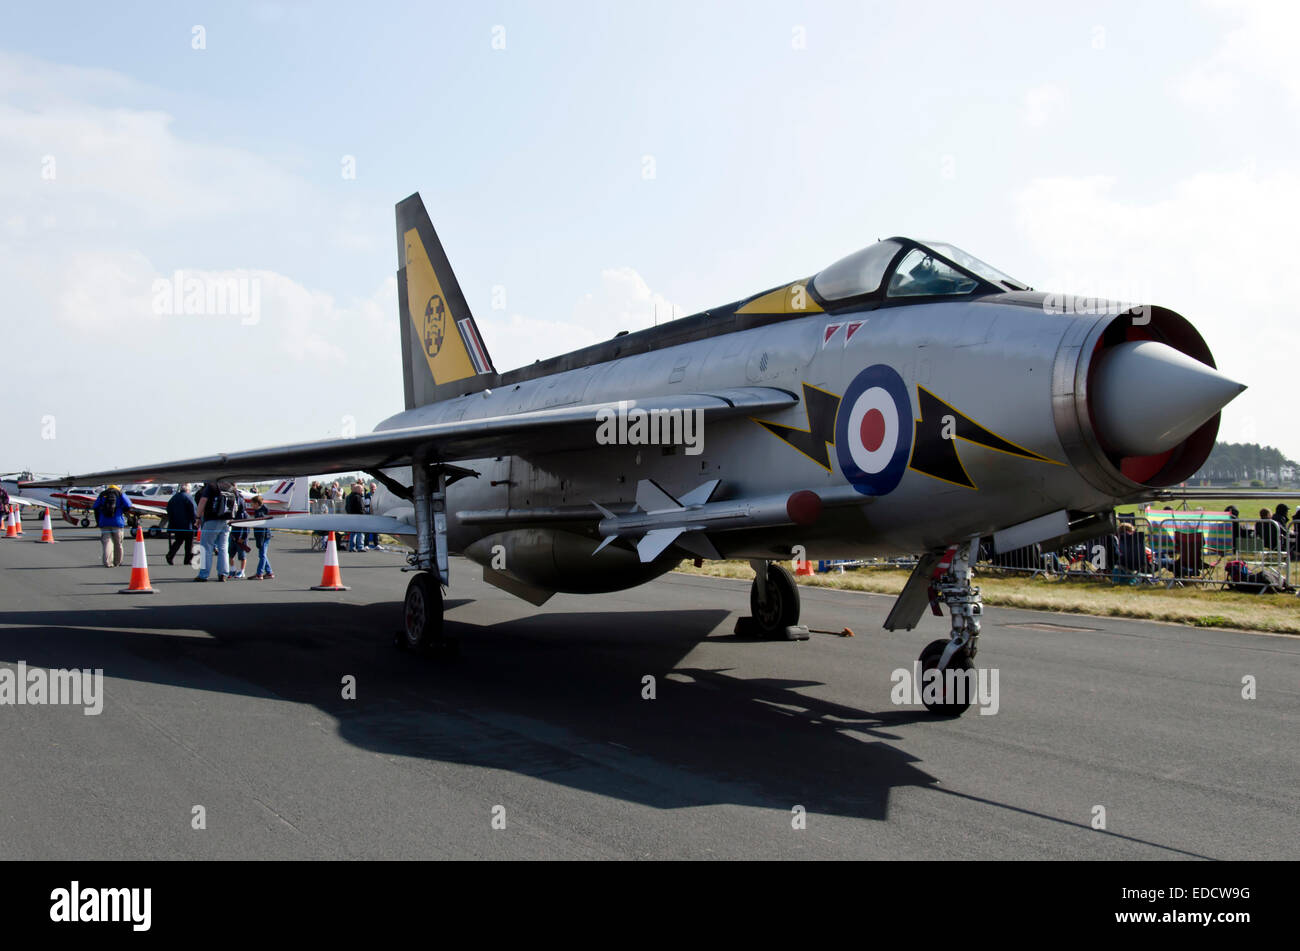 https://c7.alamy.com/comp/EDCW9G/english-electric-lightning-f3-fighter-aircraft-at-leuchars-air-show-EDCW9G.jpg